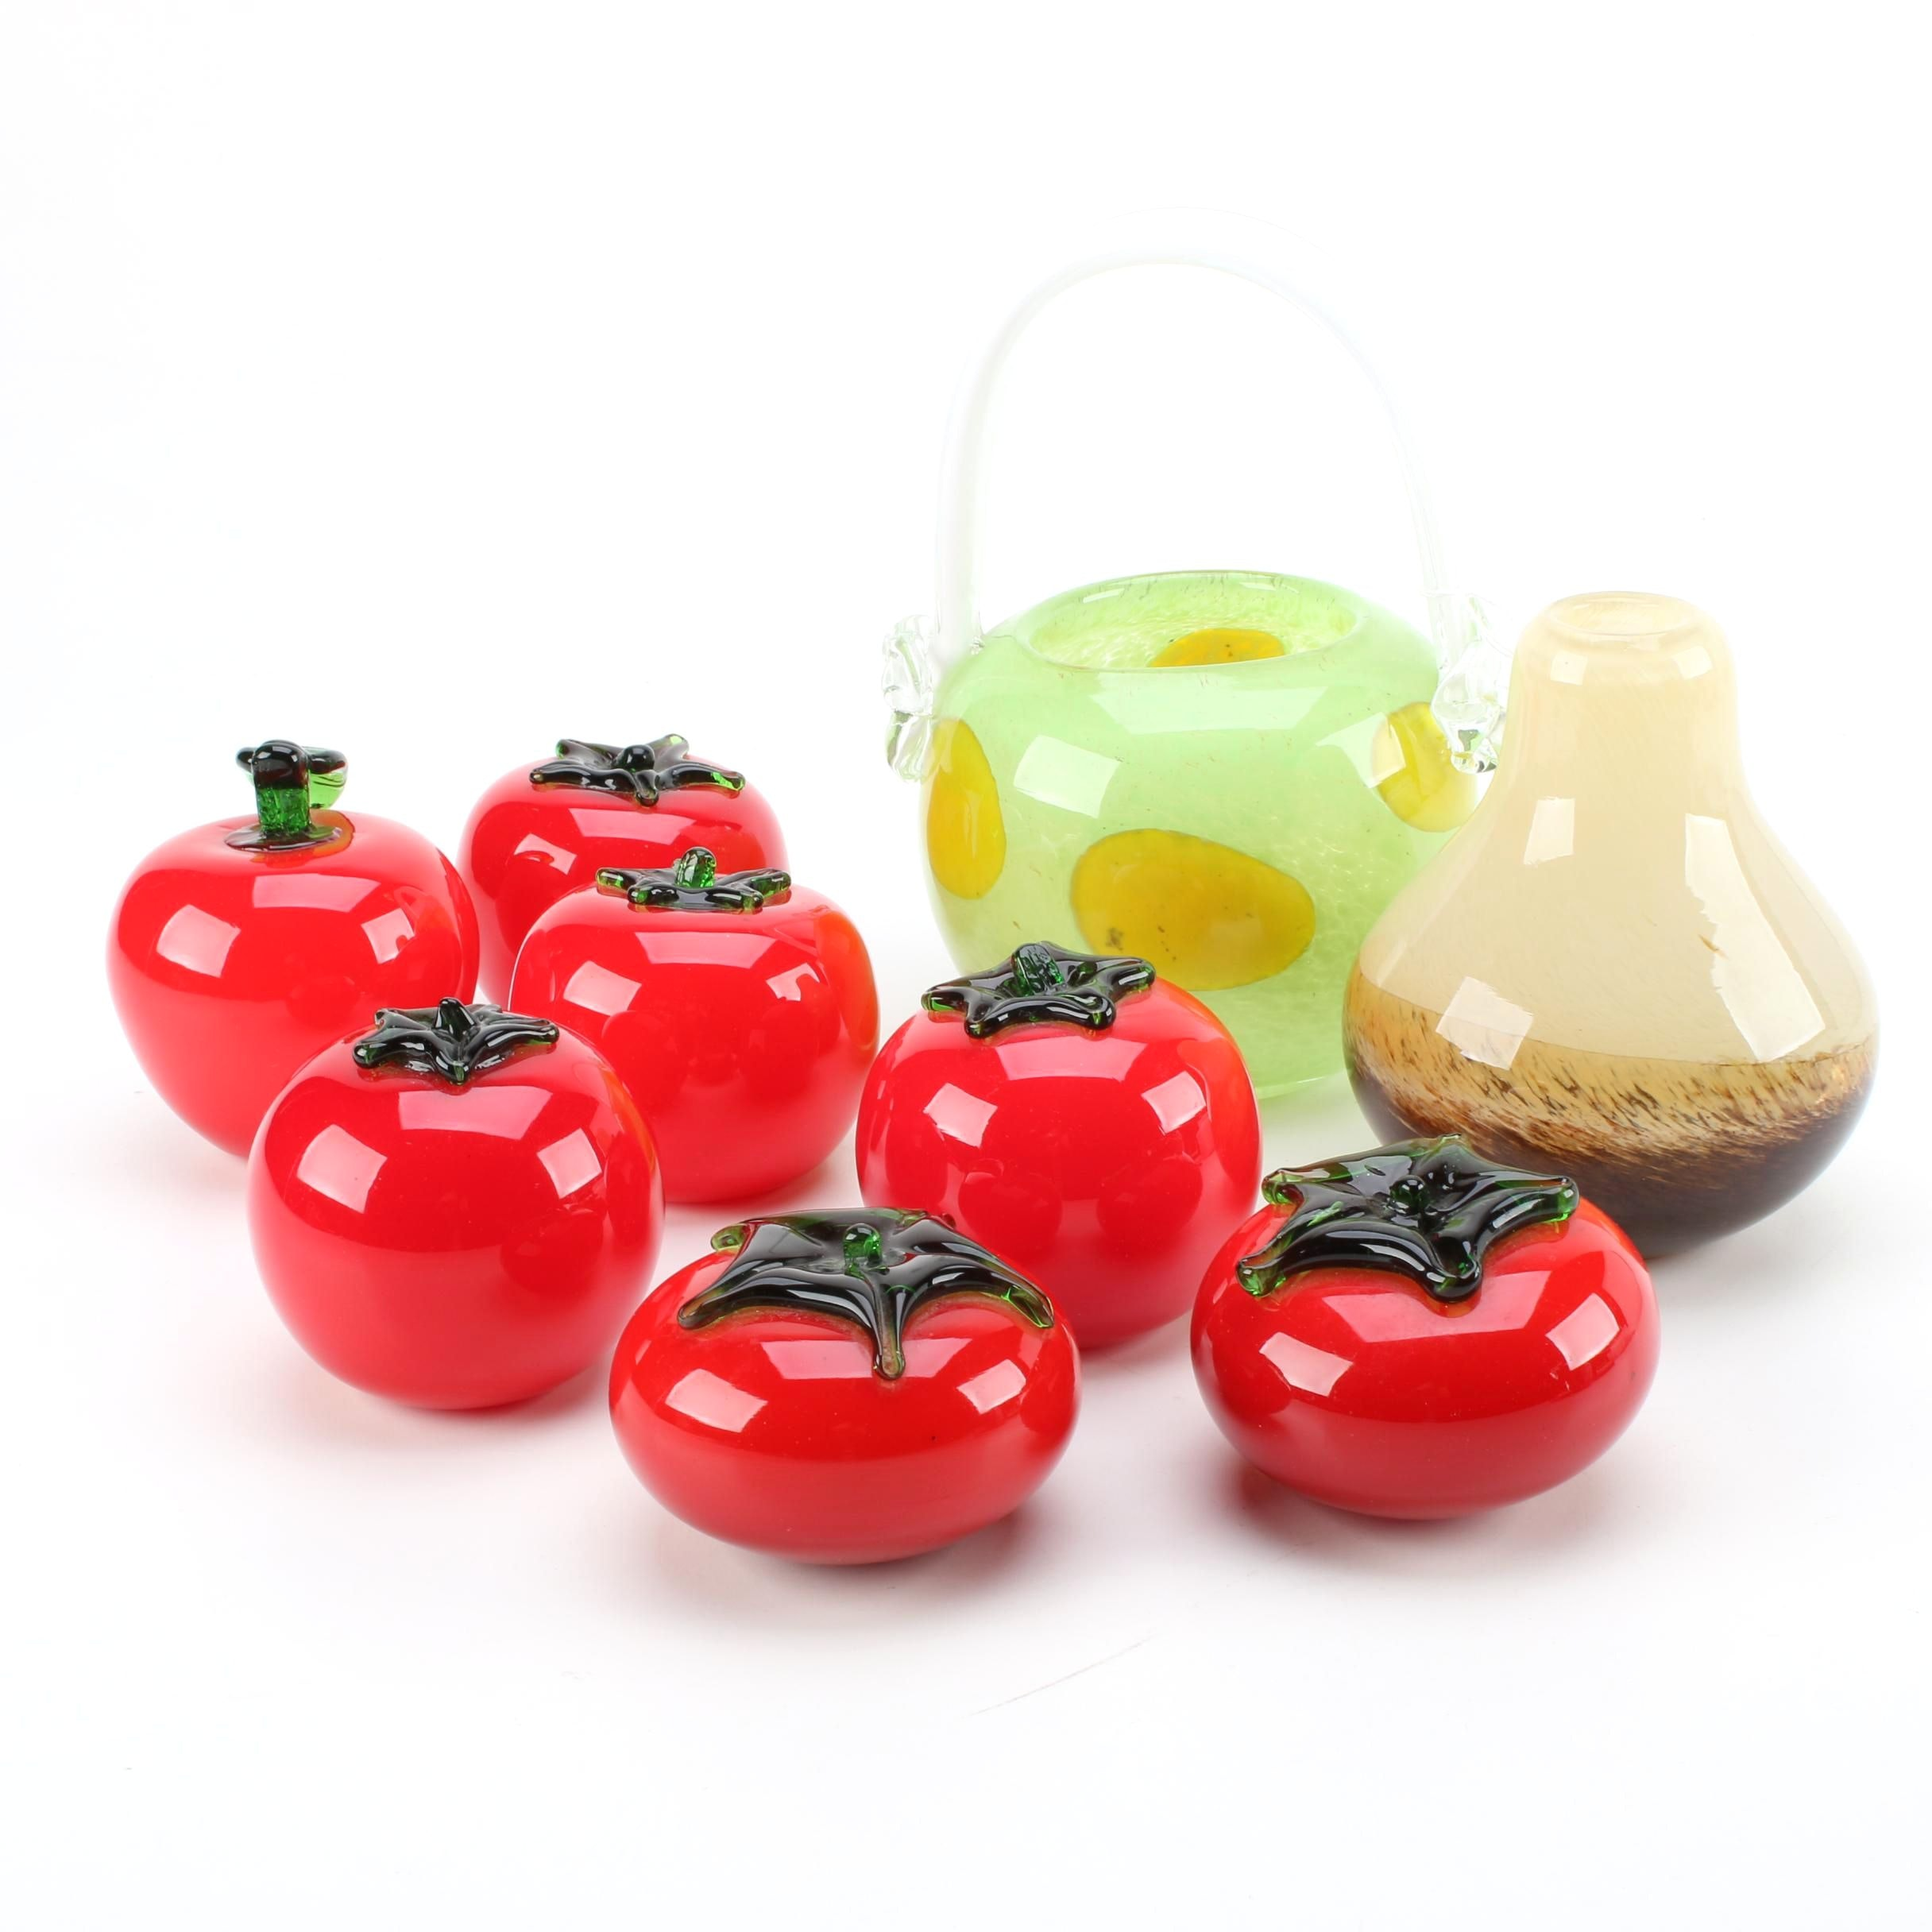 Art Glass Tomato Figurines with Basket and Vase